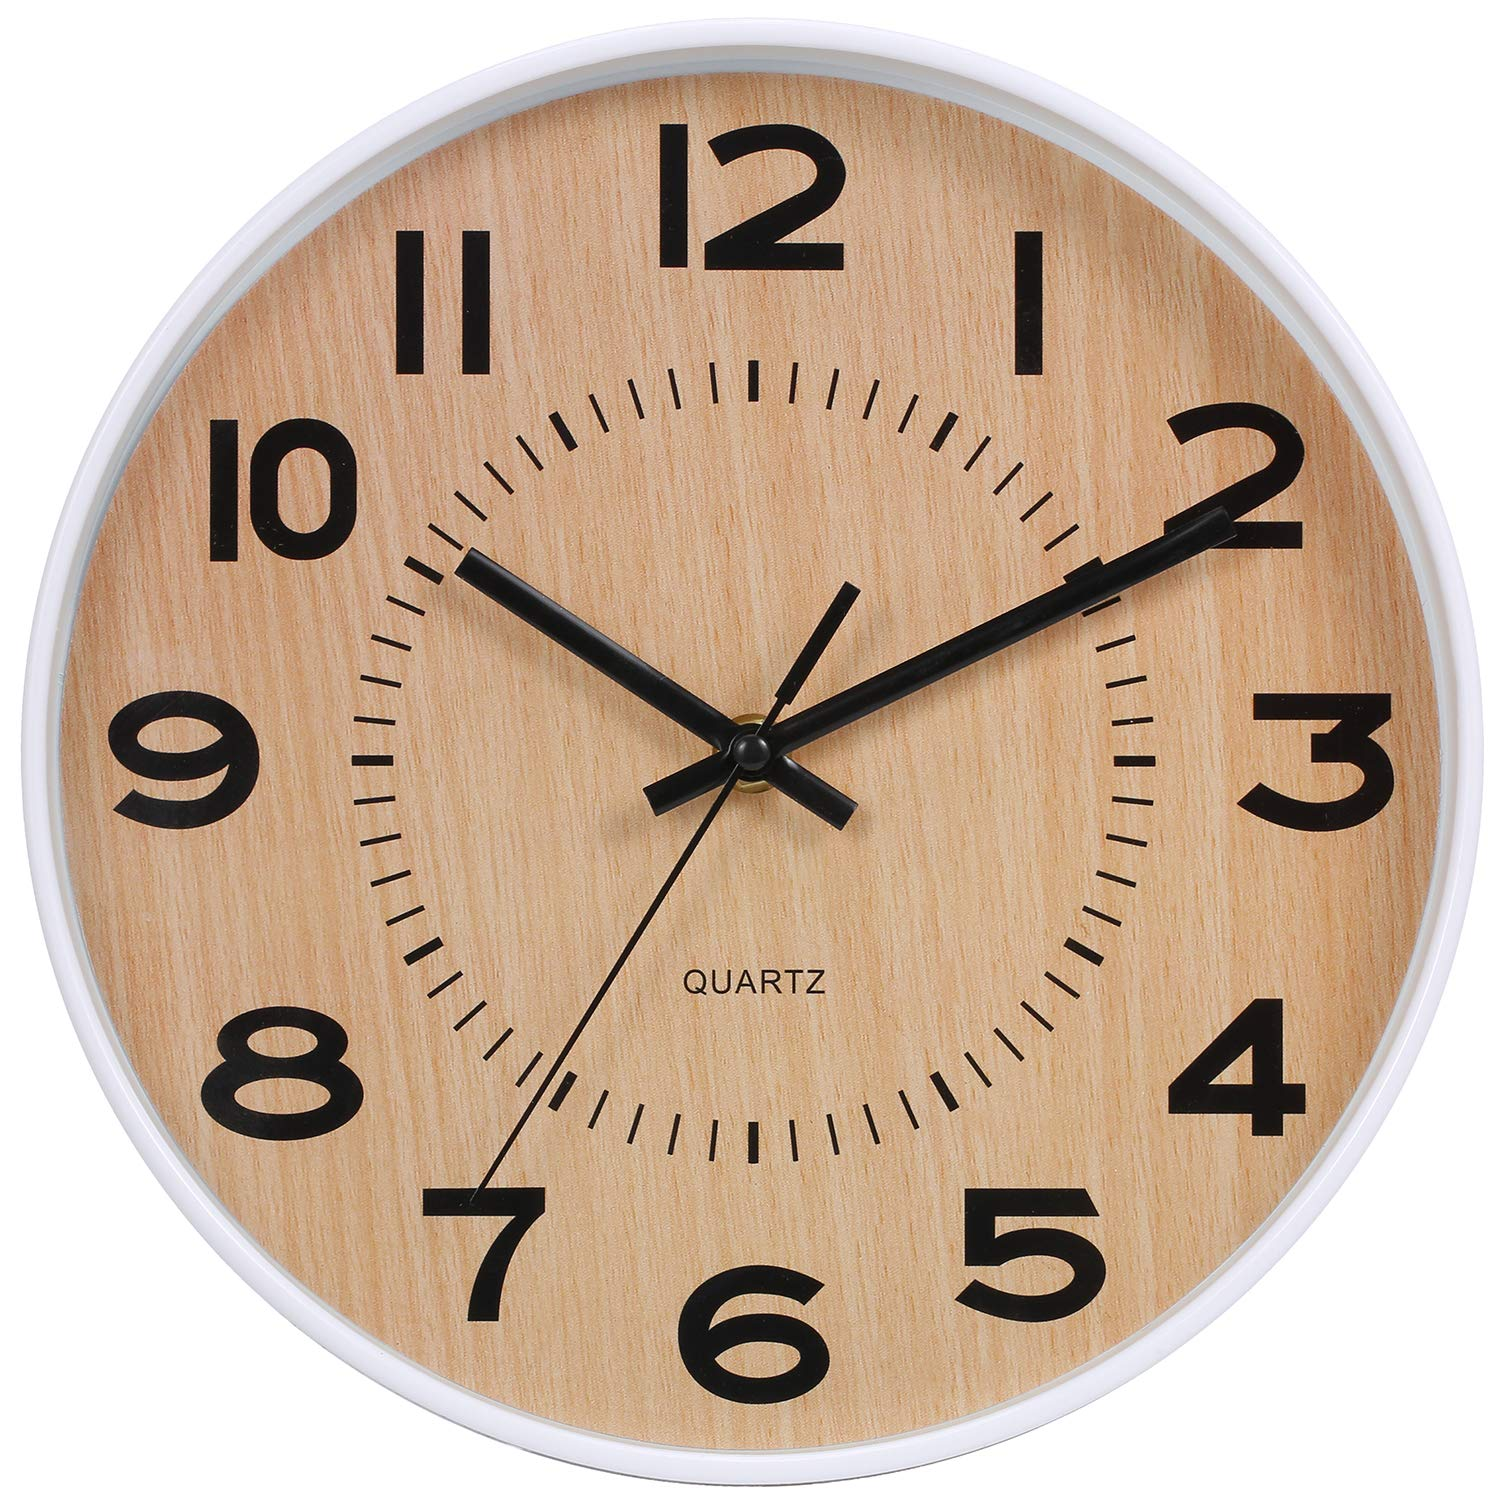 . JoFomp Modern Wall Clock  10 inch Battery Operated Silent Non Ticking  Quartz Wall Clocks  Simple Elegant Decoration Wall Clock for Living Room  Office